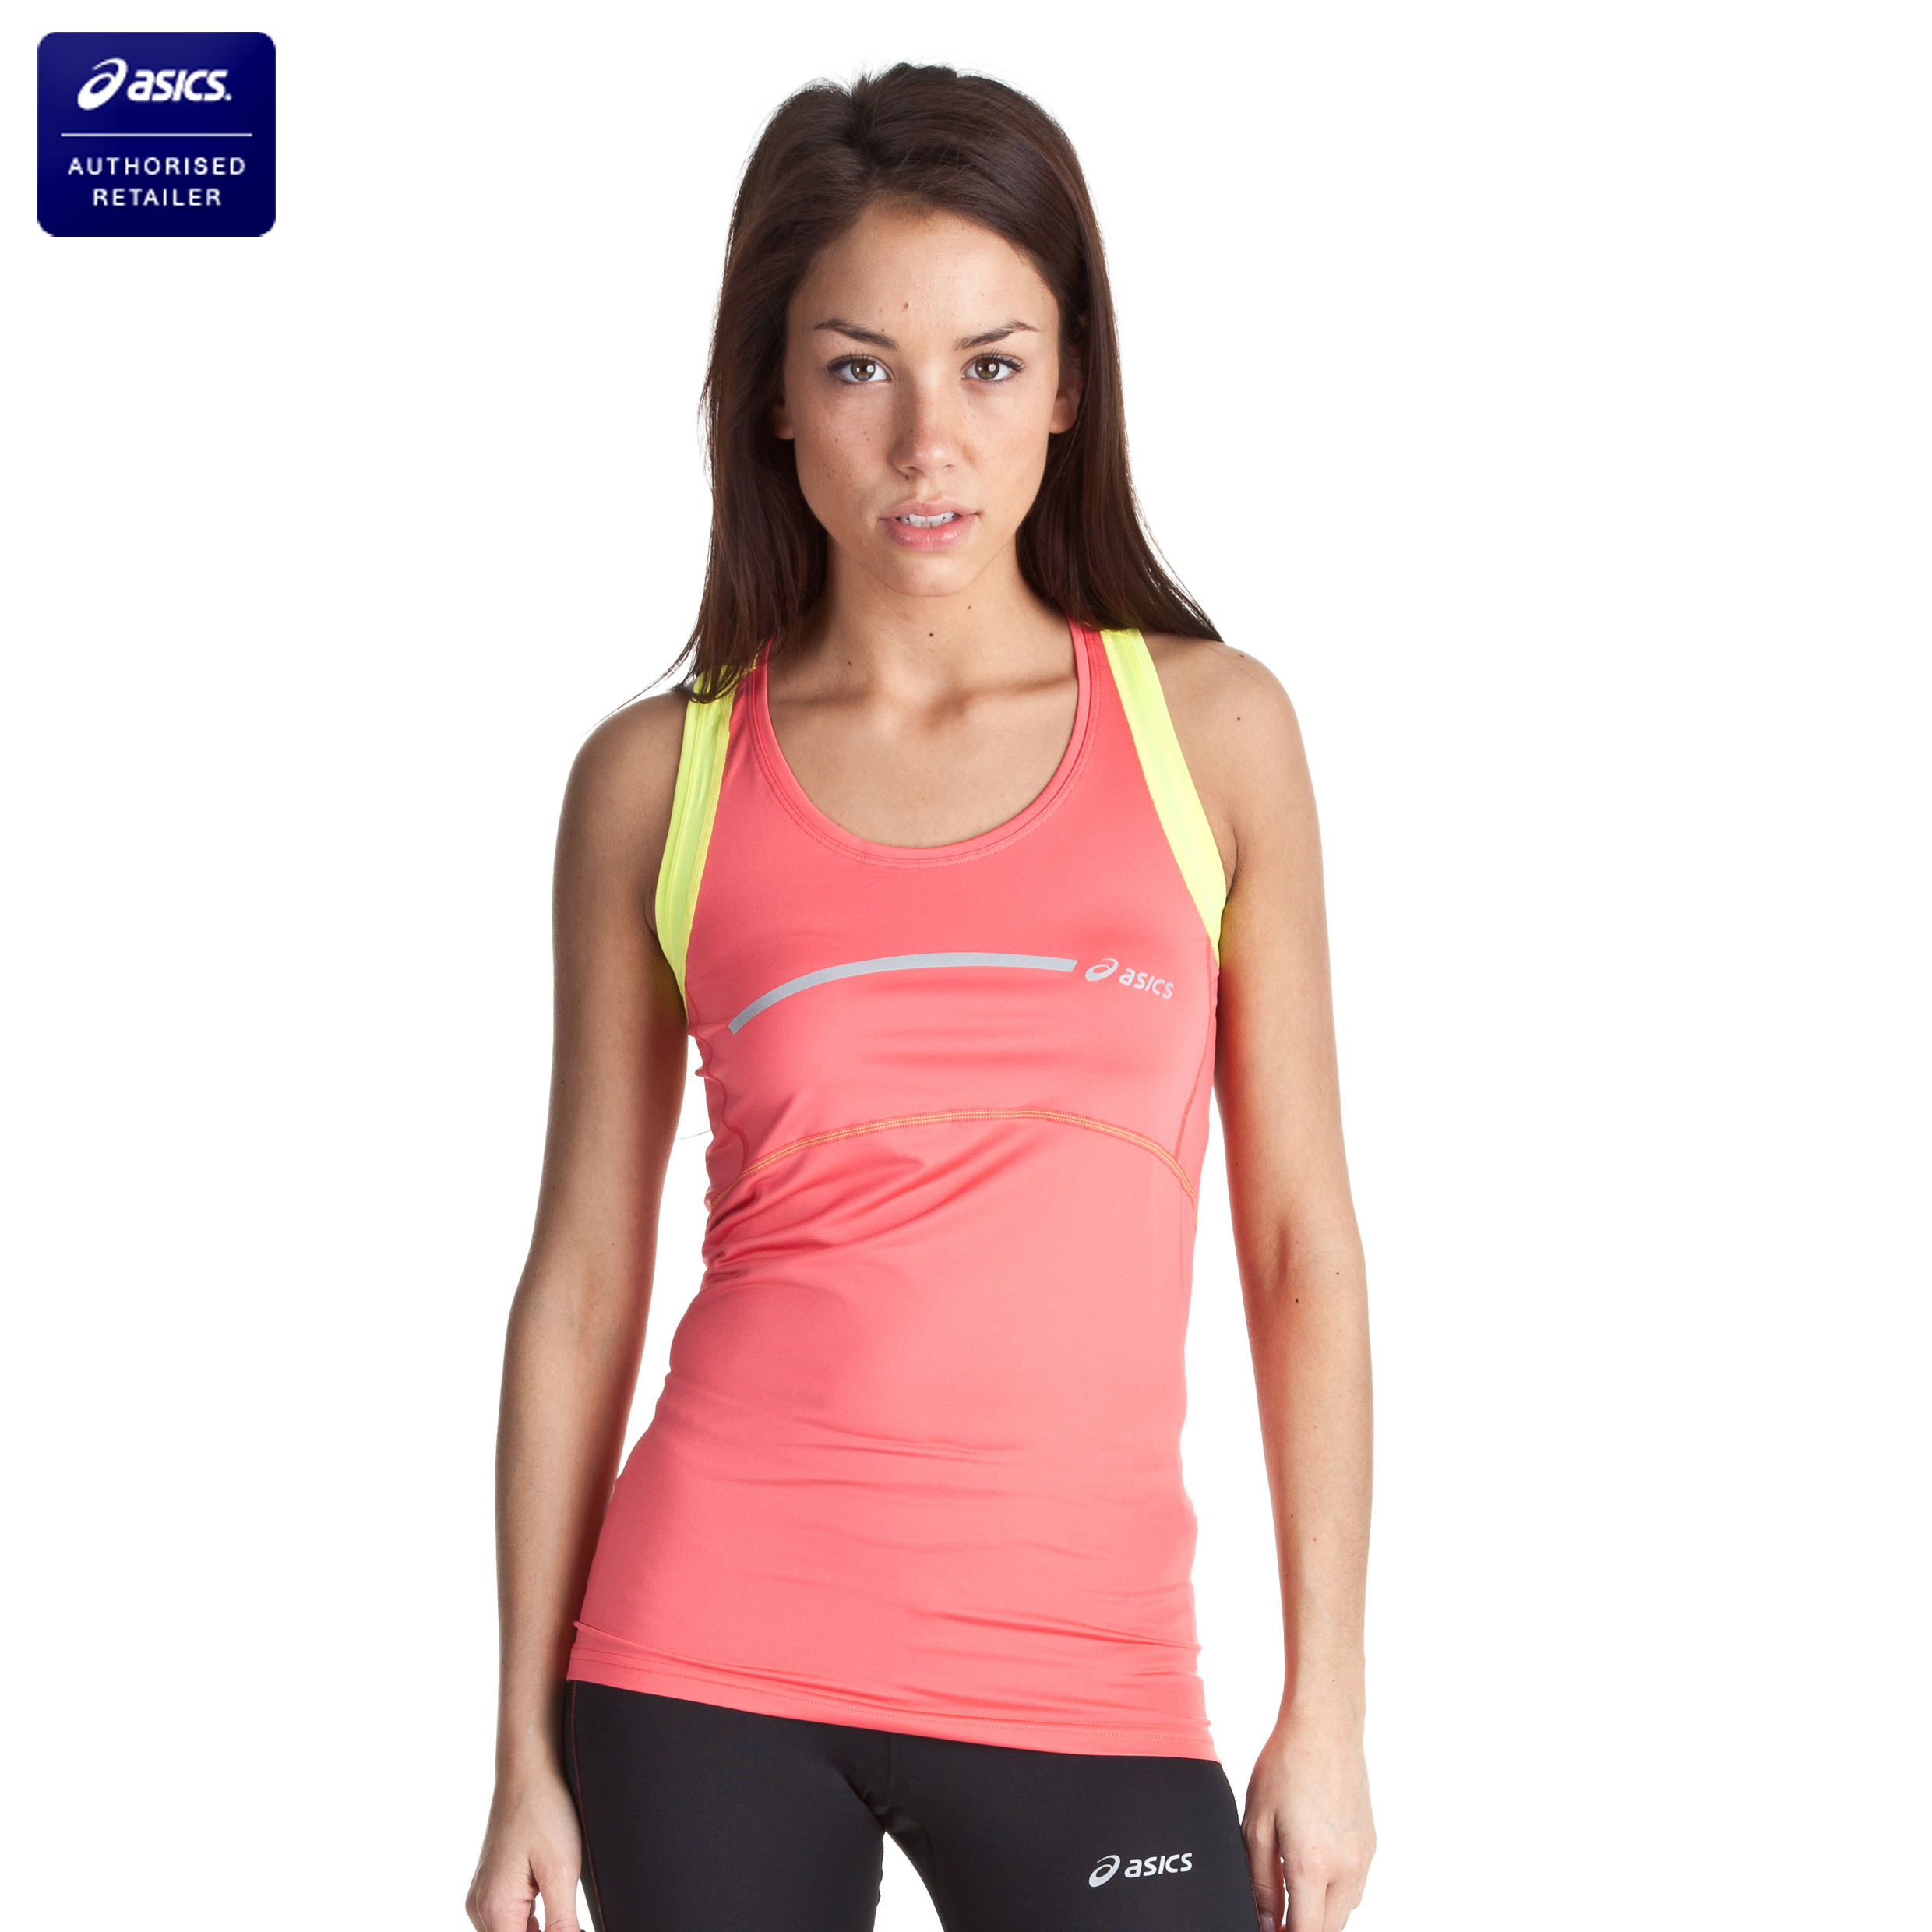 Asics Tank Top - Coral/Sunshine Yellow - Womens